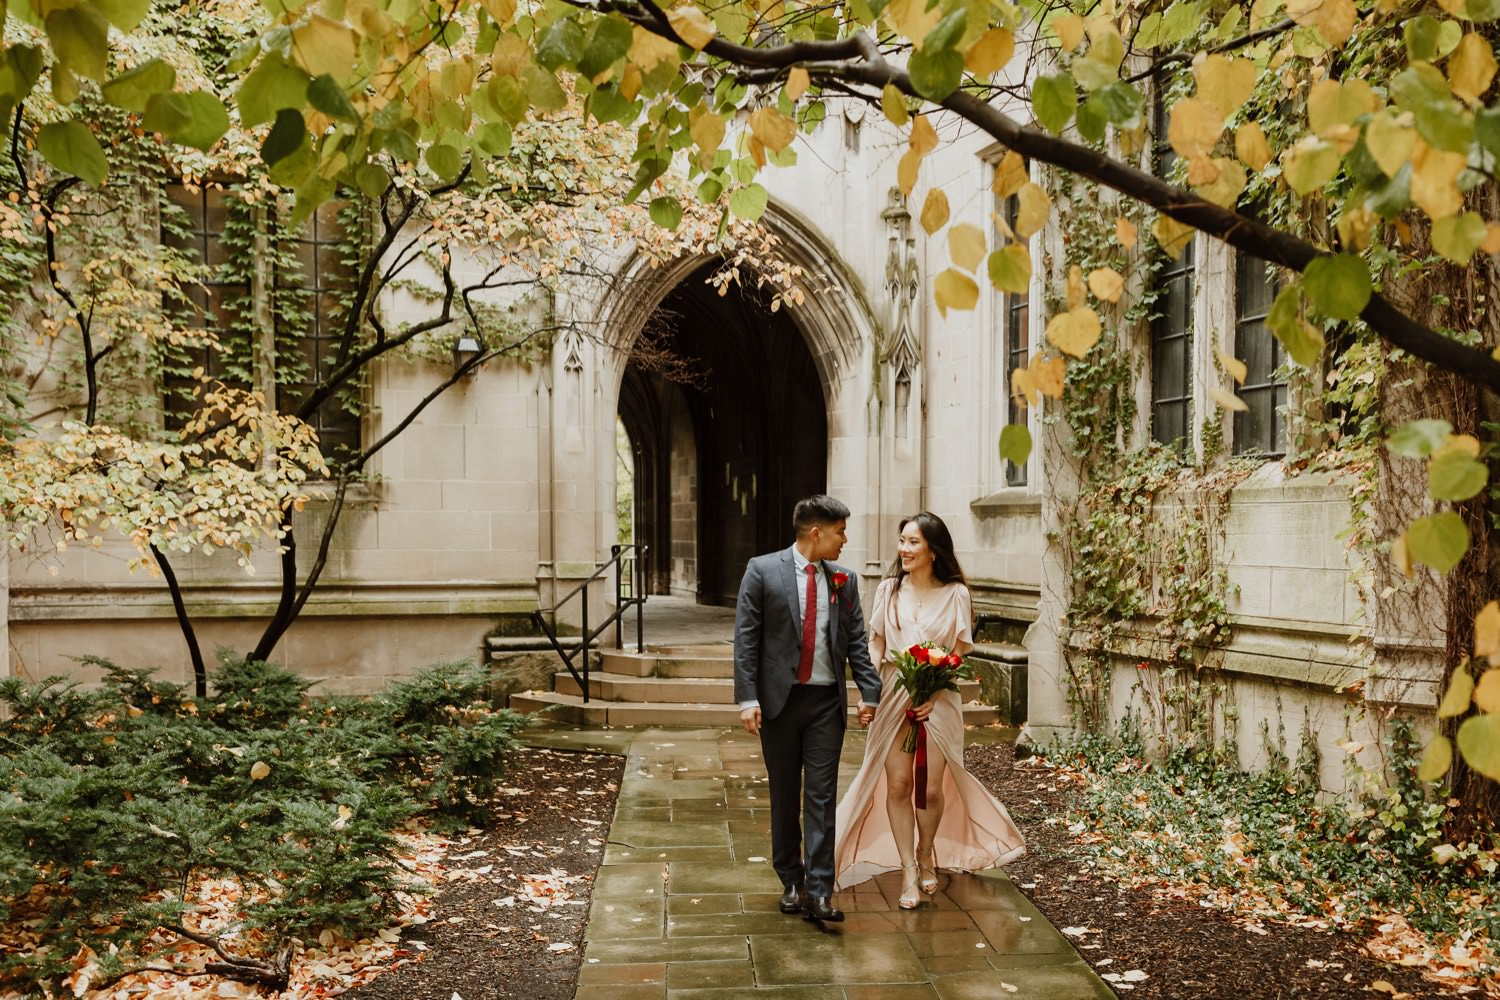 Bride and groom walk together at University of Chicago after their elopement ceremony